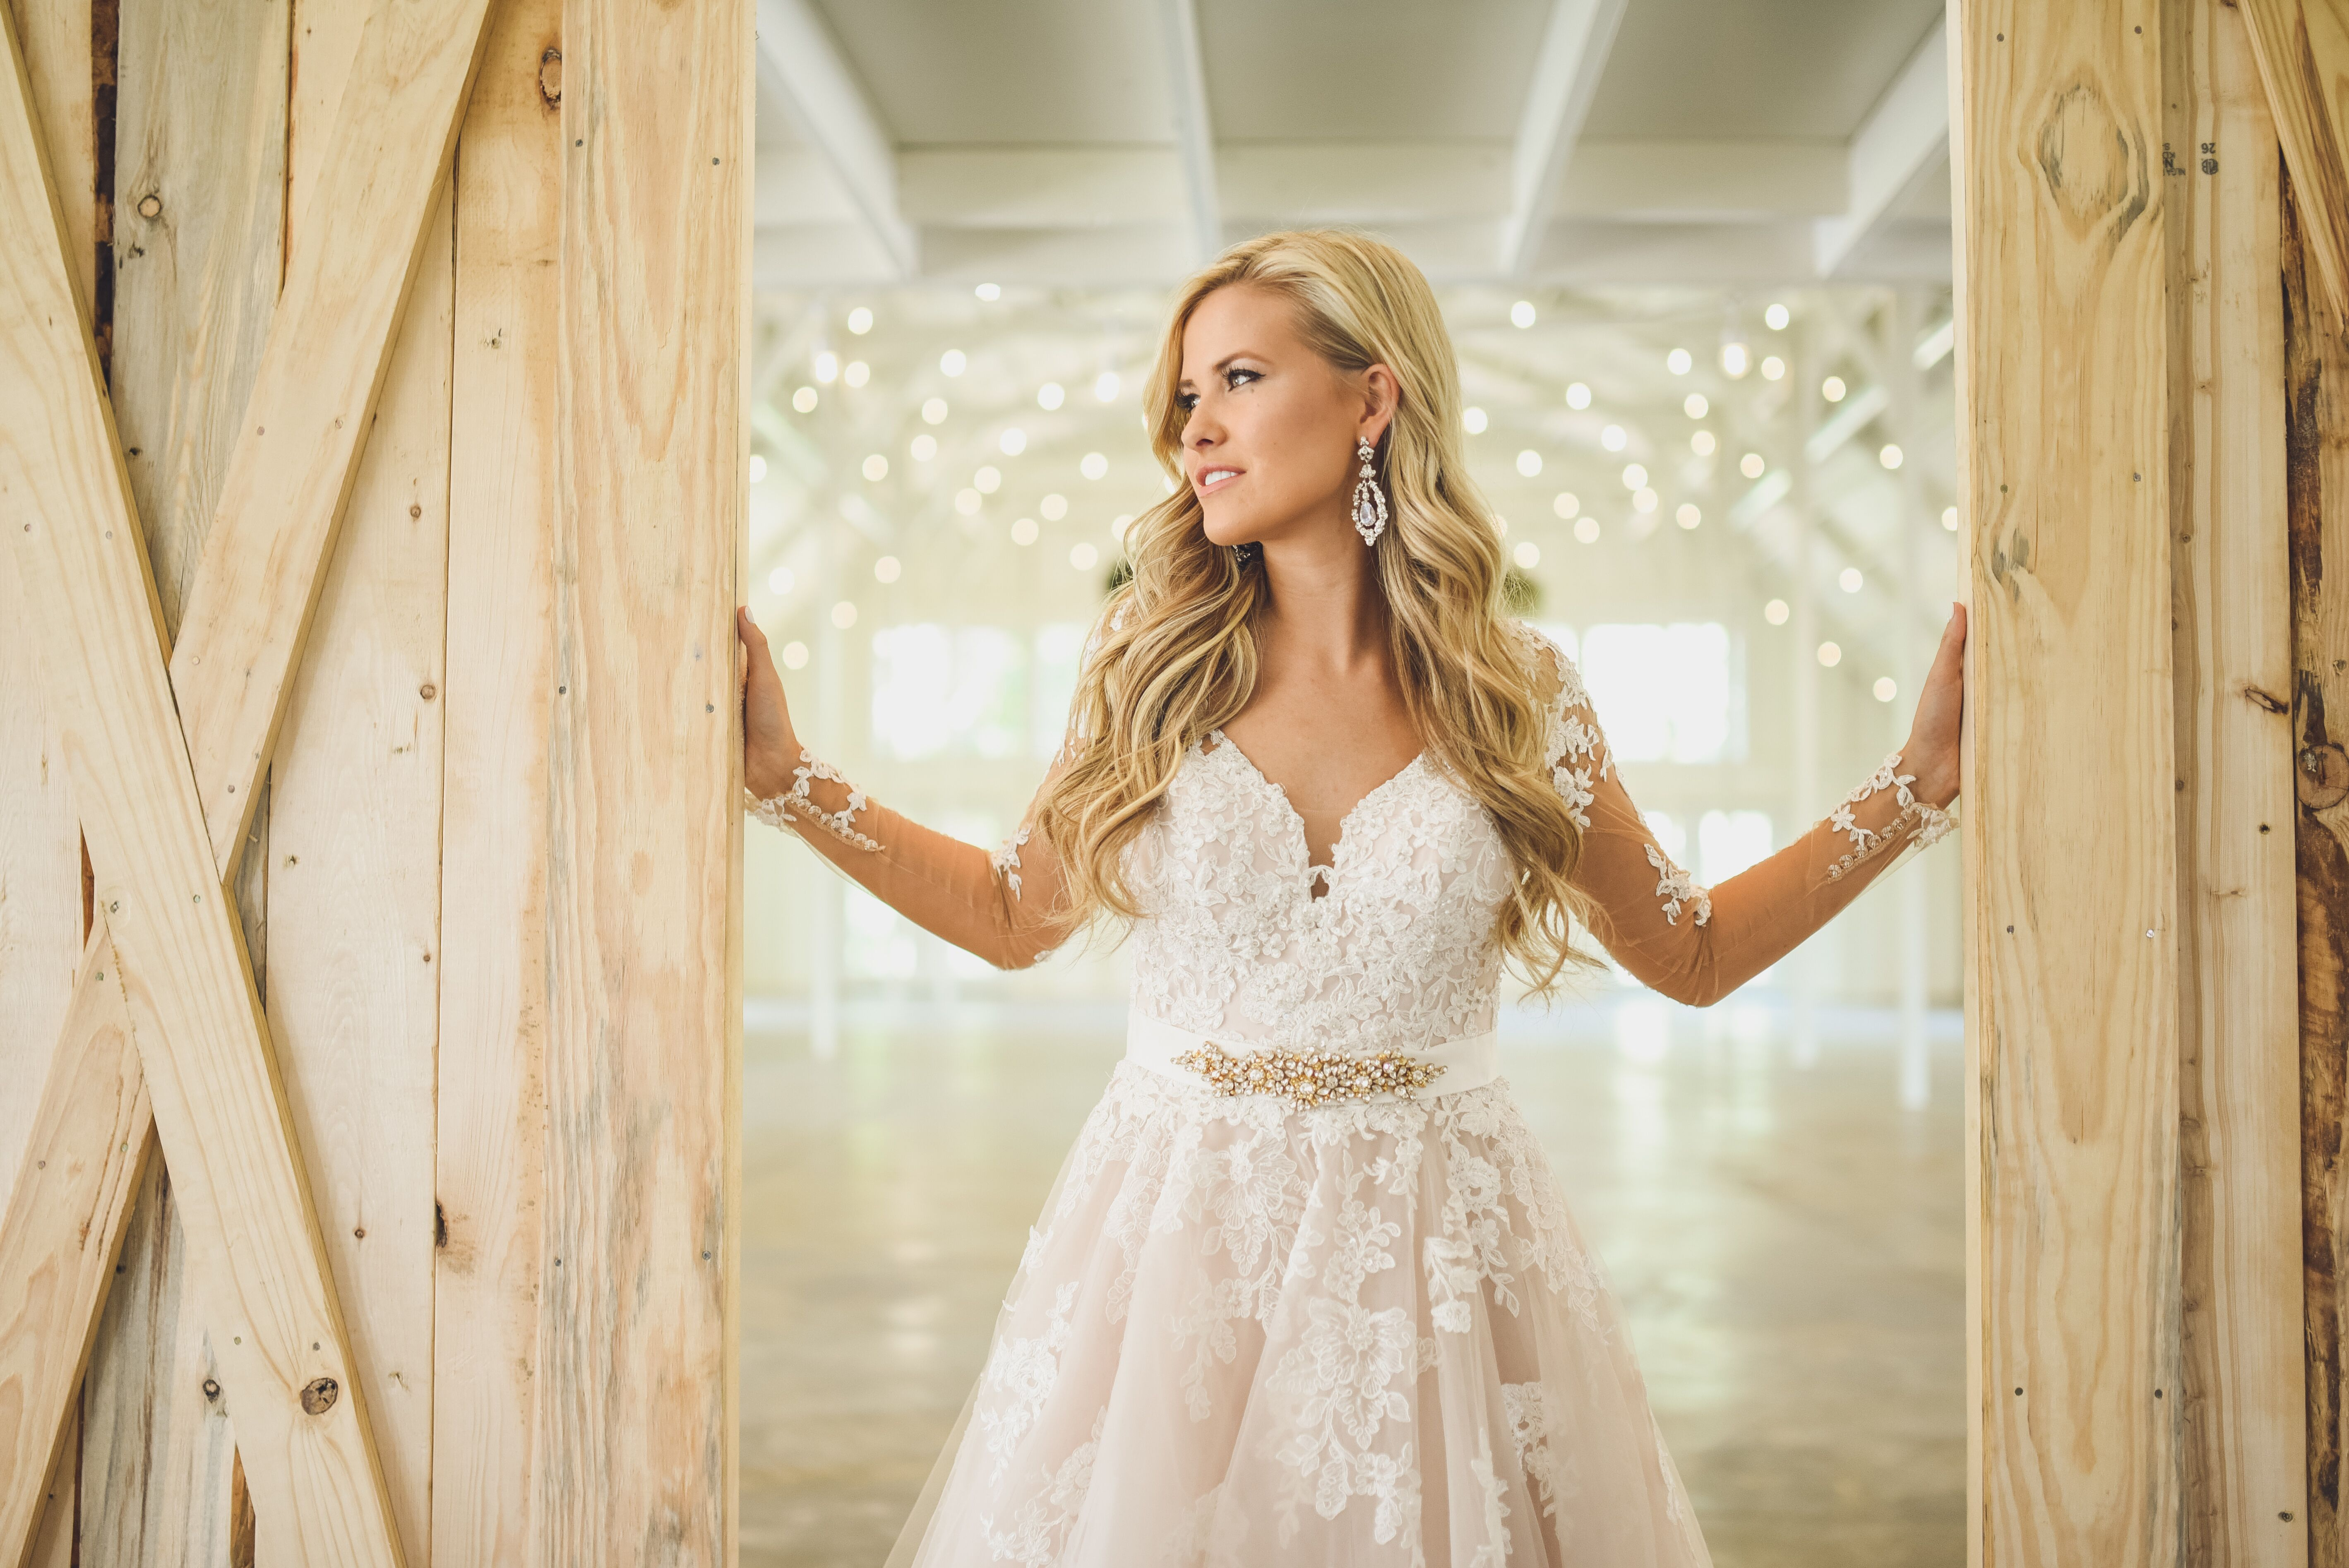 The dress bridal boutique springfield mo couples who like the dress bridal boutique also like ombrellifo Gallery